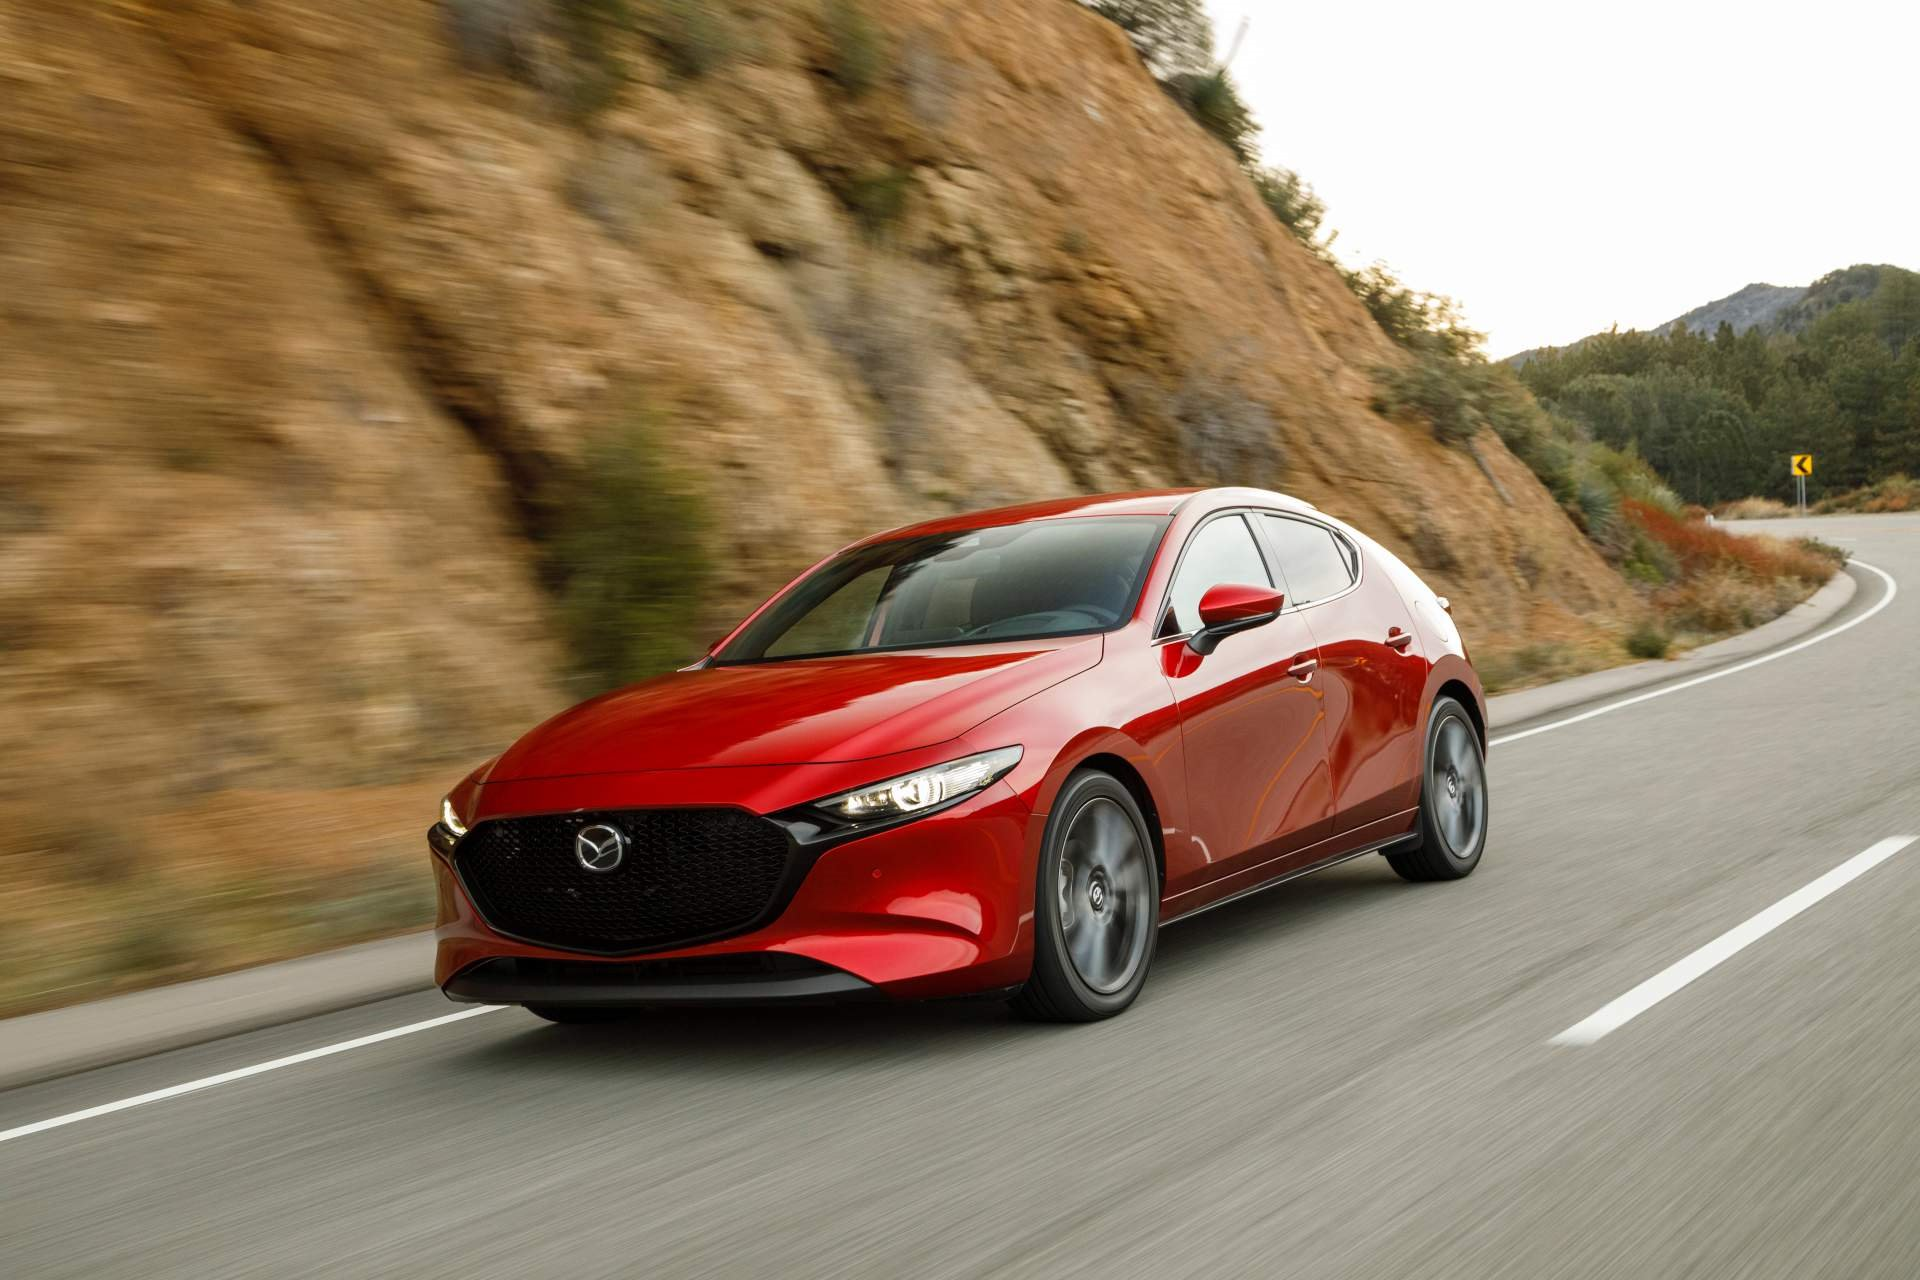 New 2019 Mazda-Mazda3 Sedan Preferred Mazda3 Sedan Preferred for sale $24,200 at M and V Leasing in Brooklyn NY 11223 1